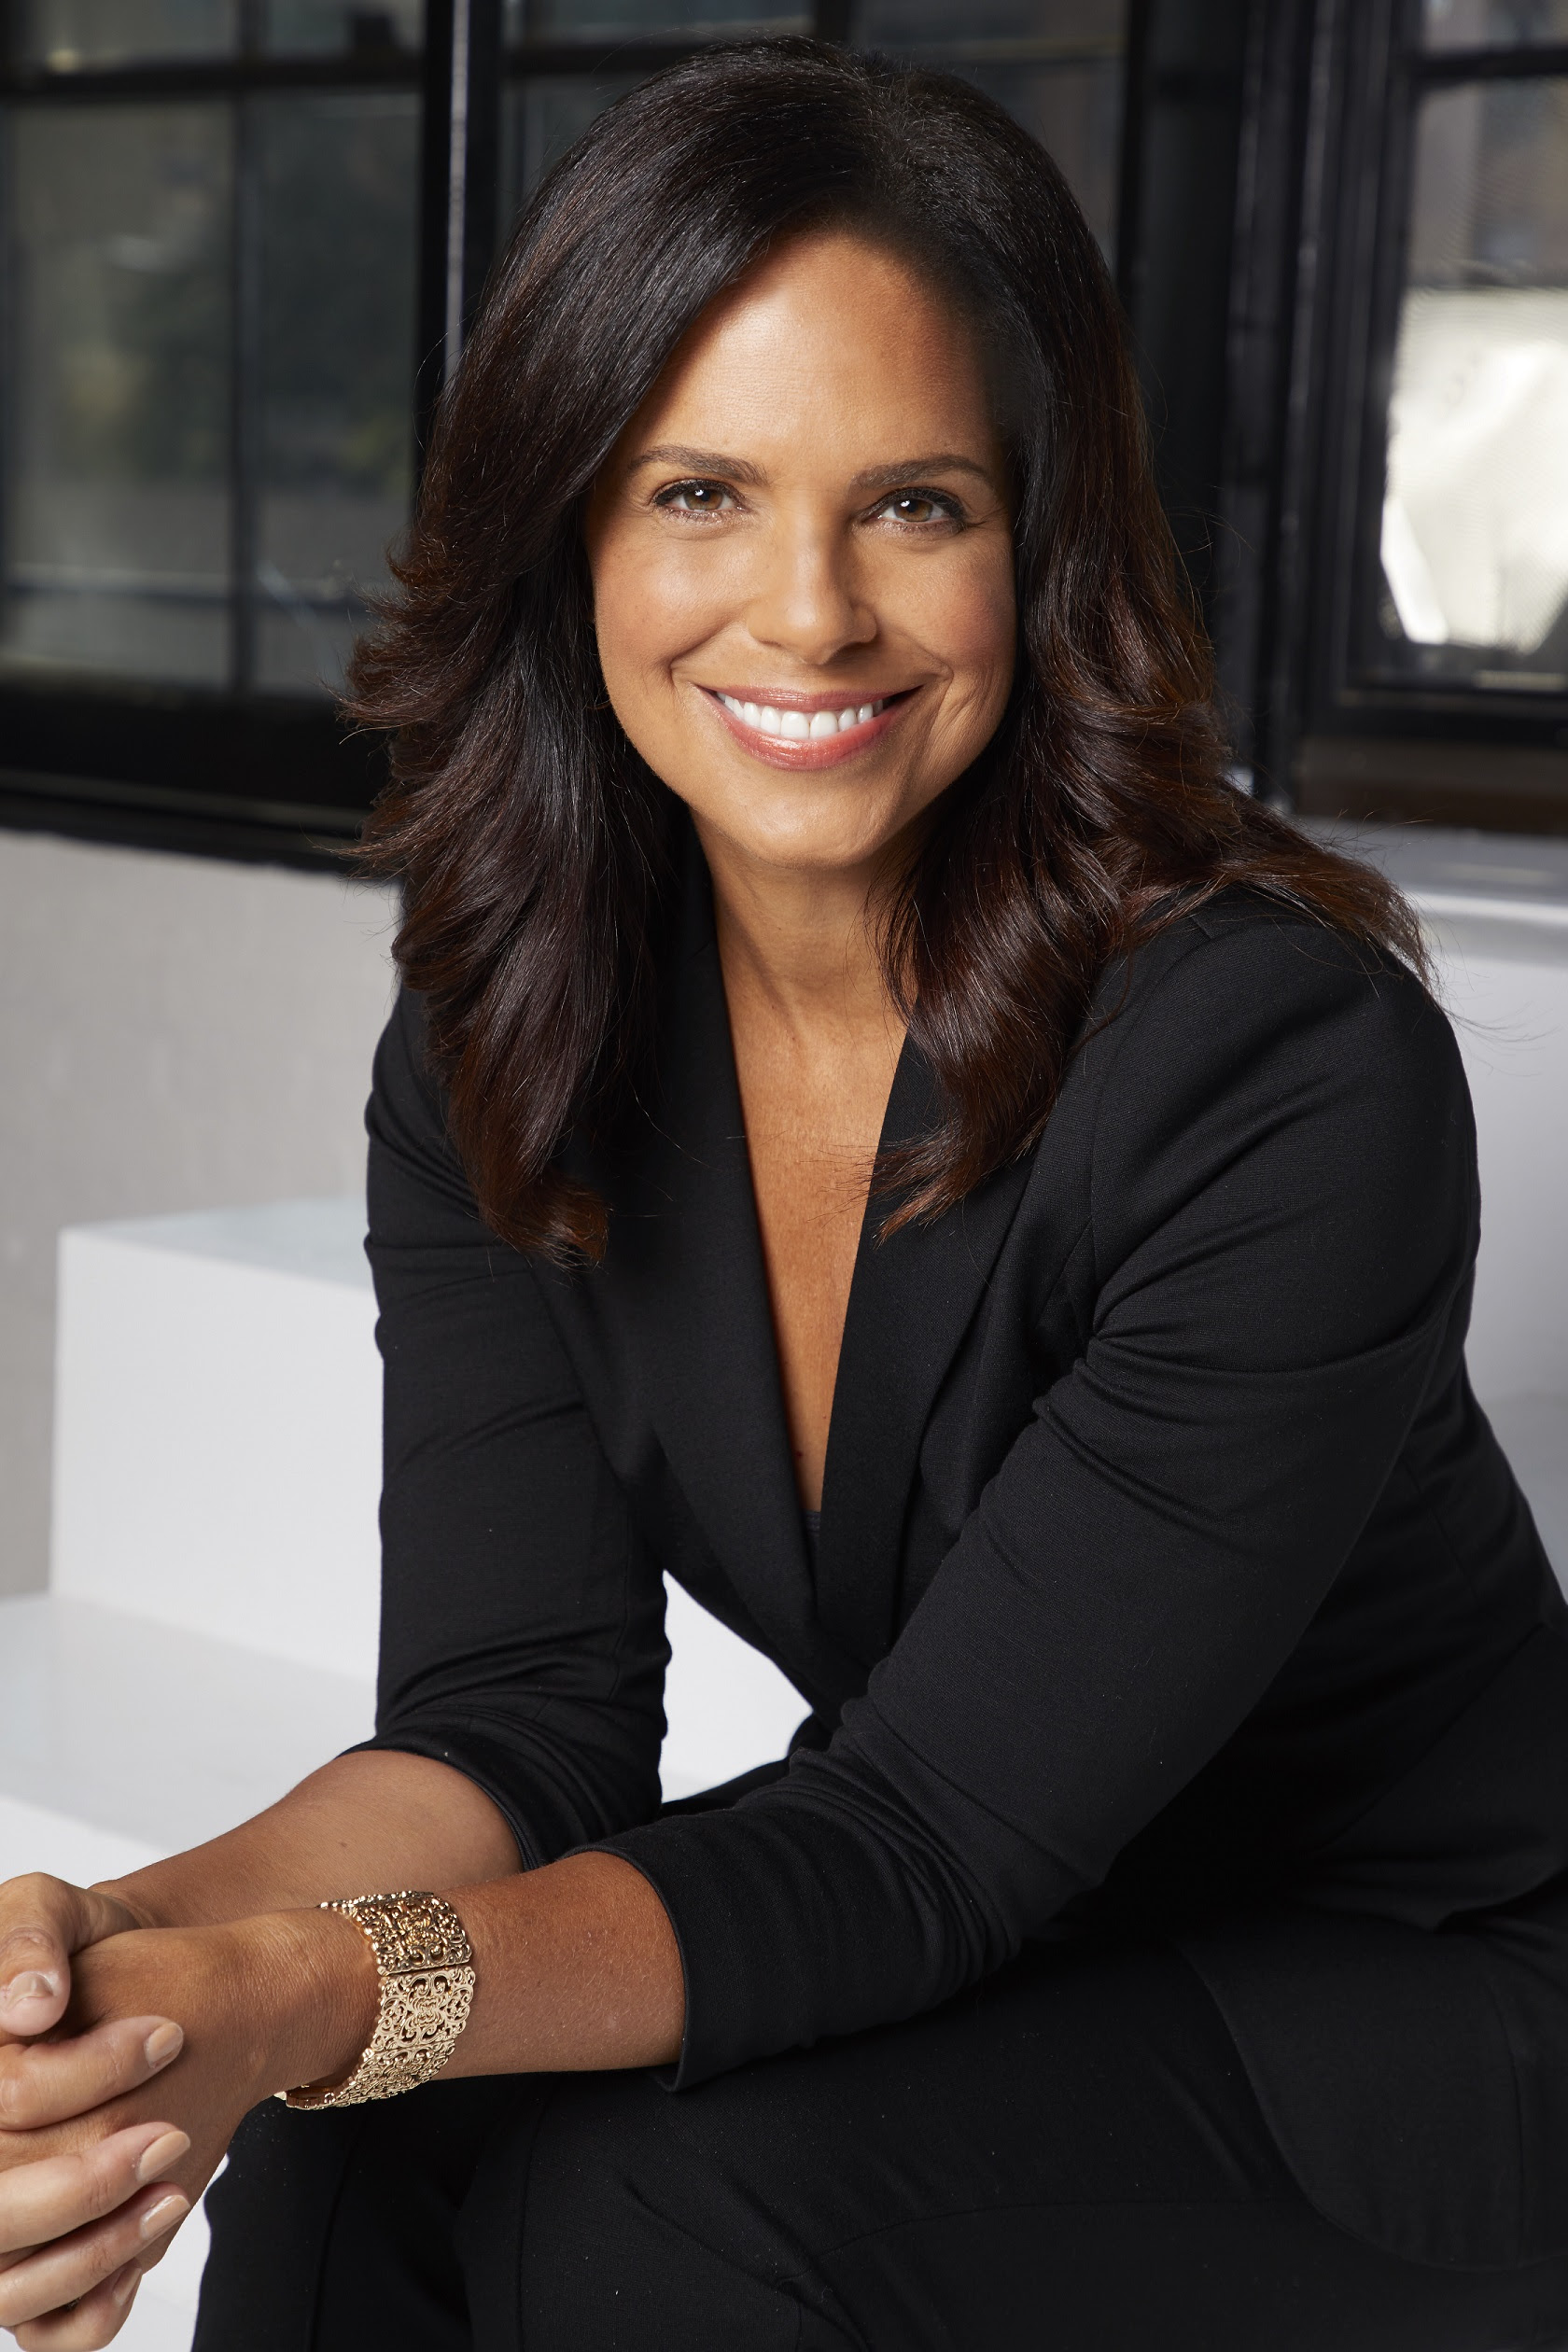 Join Soledad O'Brien at our Winter Wish Gala on Tuesday, December 4, 2018 at Gotham Hall. For more information visit DRUGFREE.ORG/WINTERWISH.